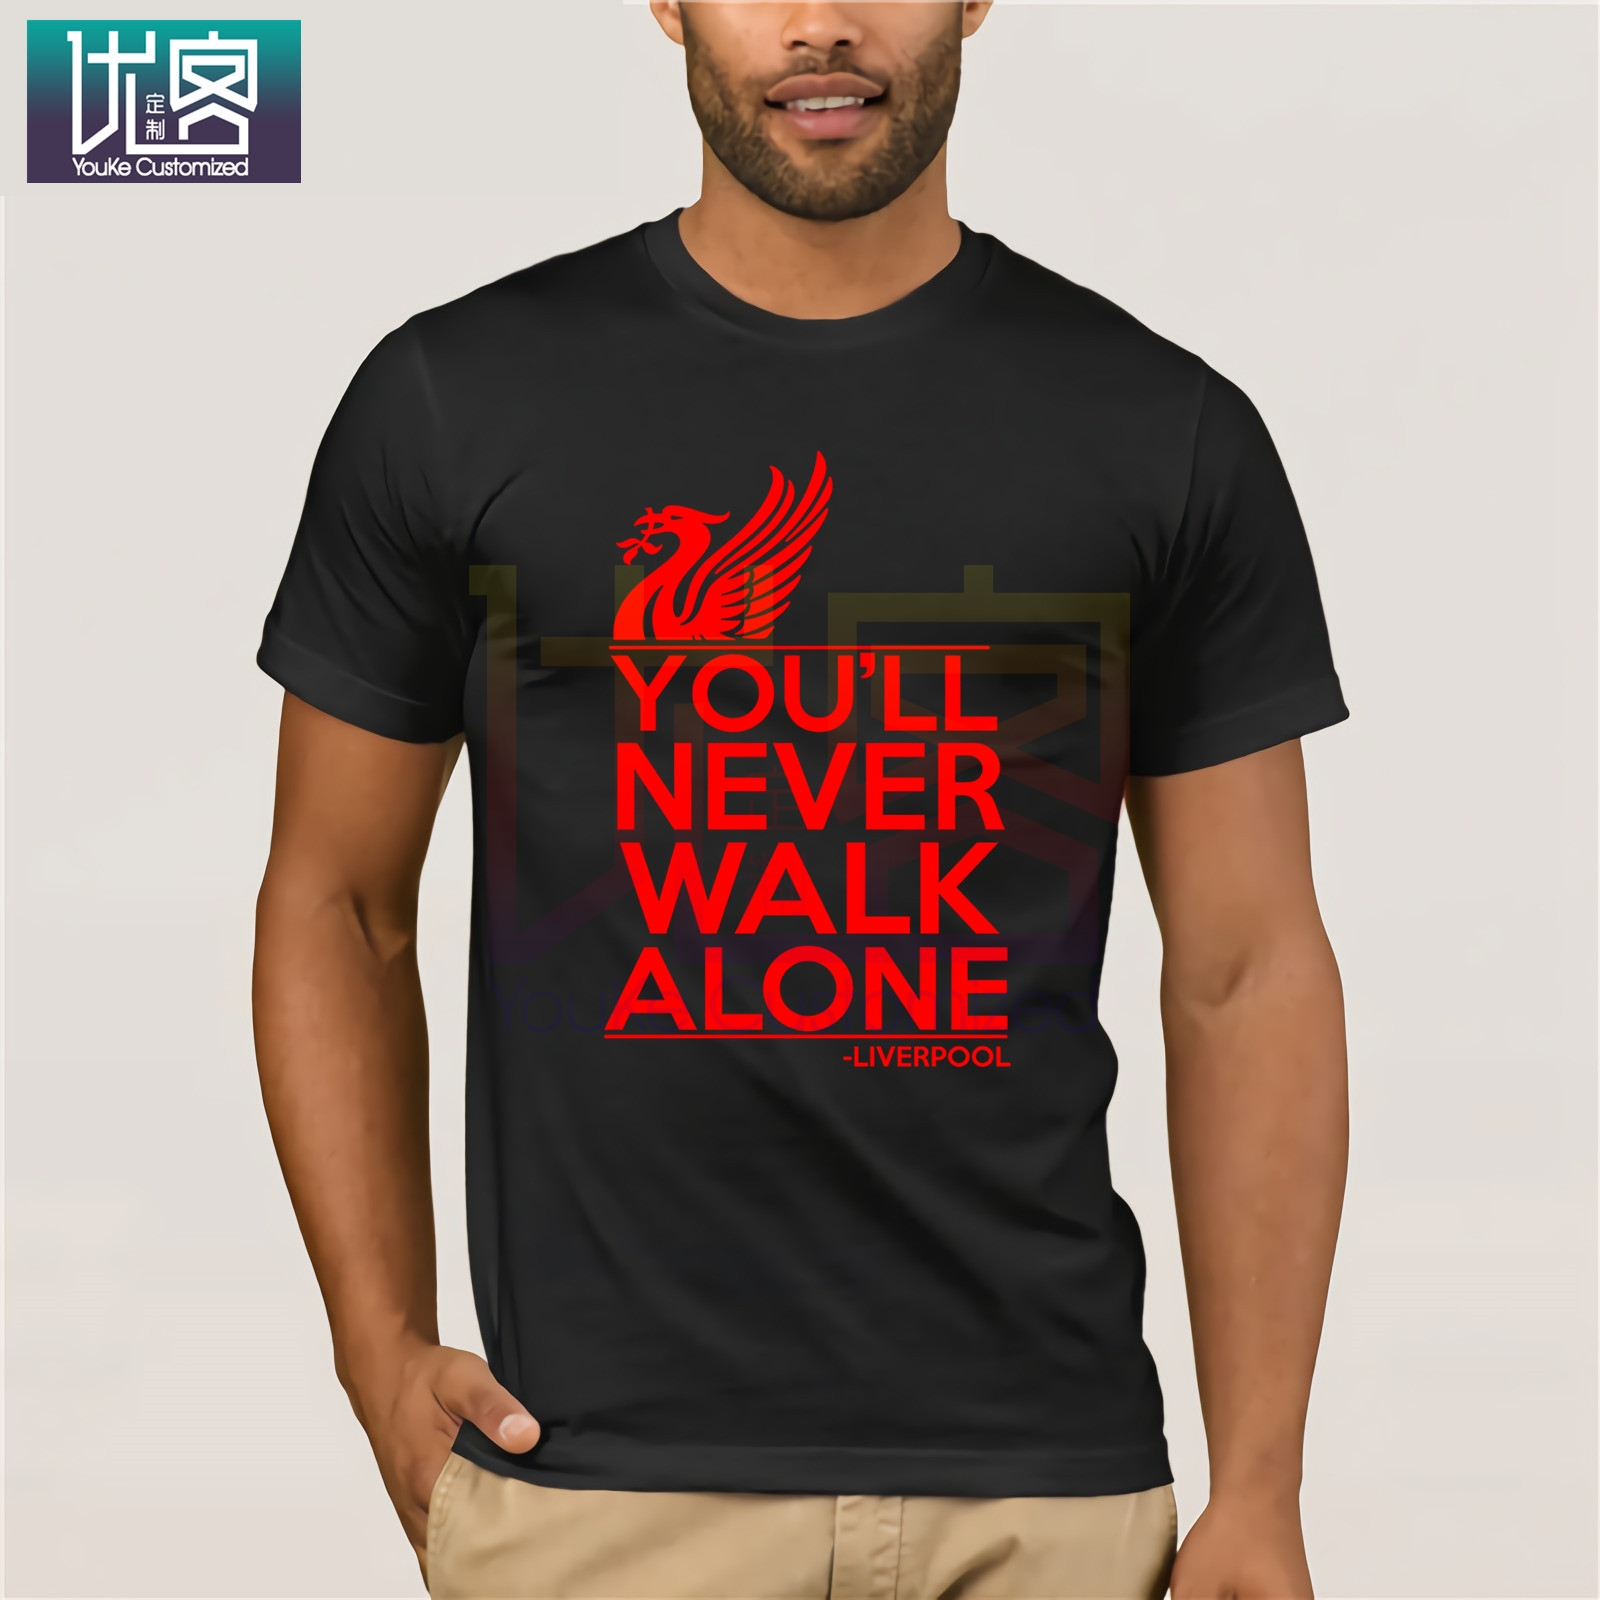 Liverpool T Shirt You'll Never Walk Alone Football Fan Mens Gift TeeMen Women Unisex Fashion T-shirt Free Shipping For Men Tops